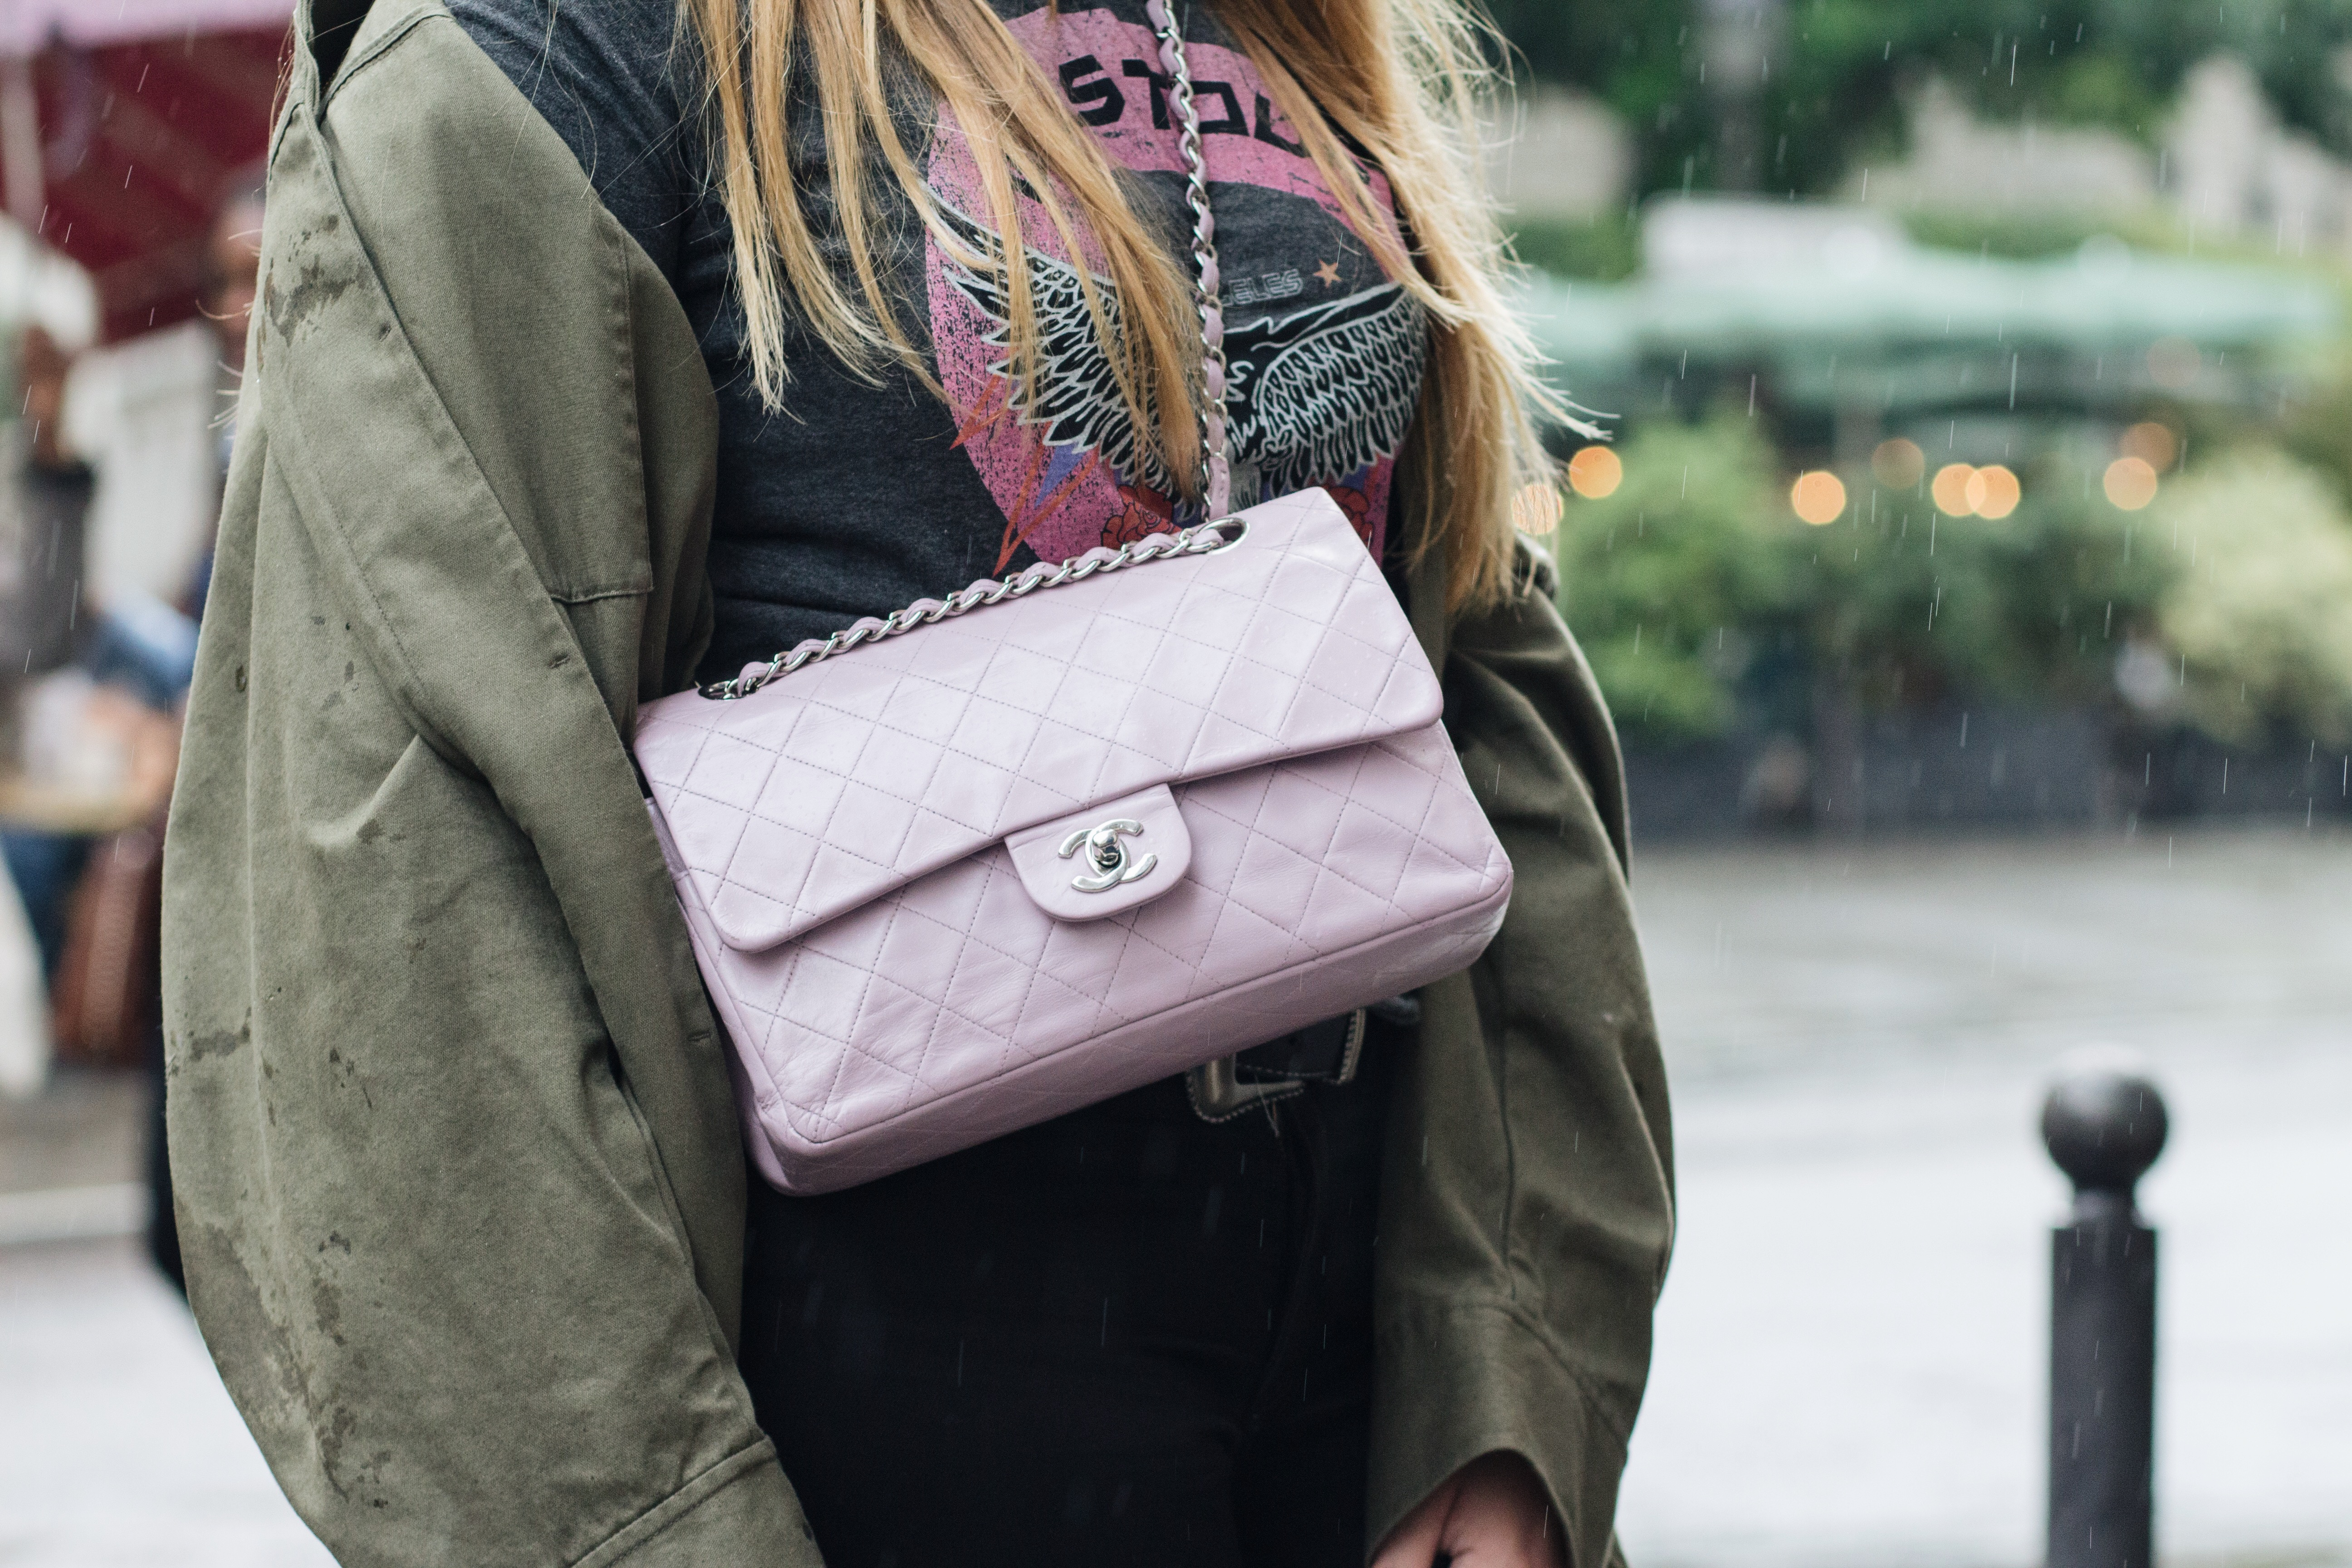 Blogger Dominique Candido wearing a chanel bag